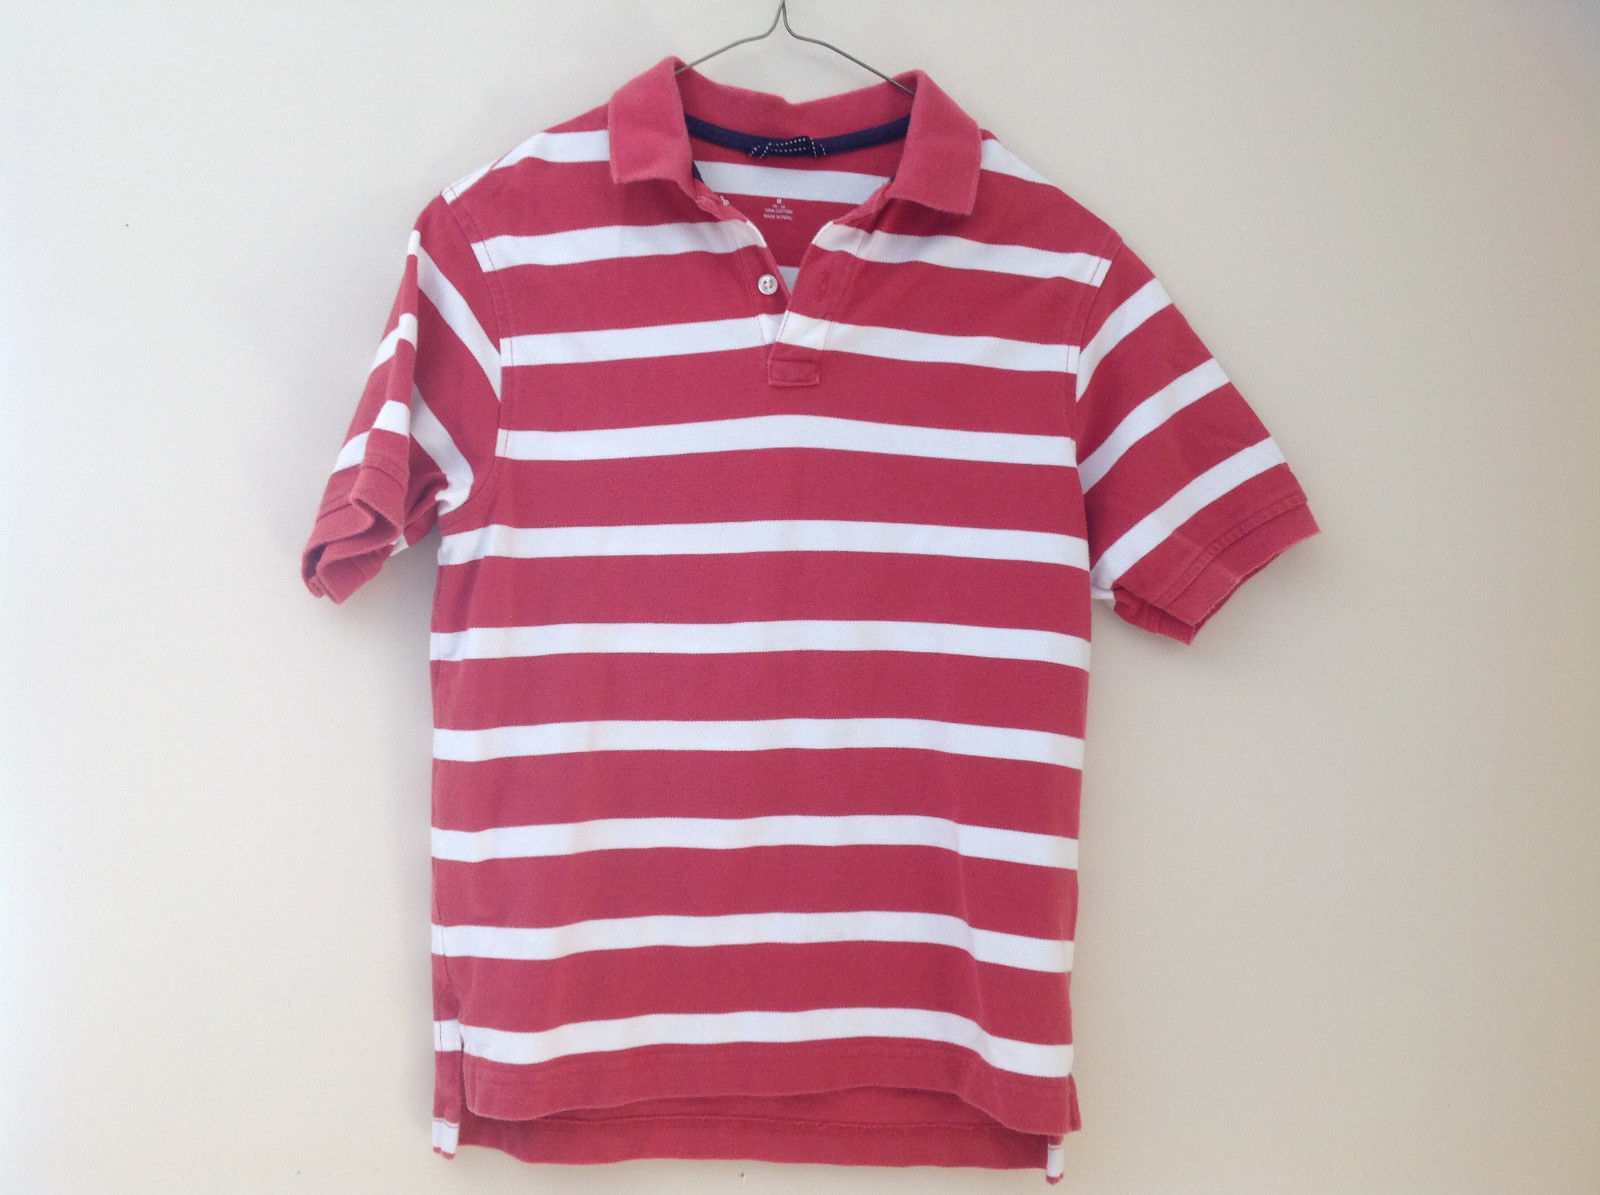 Lands end red and white striped short sleeve polo shirt for Red white striped polo shirt